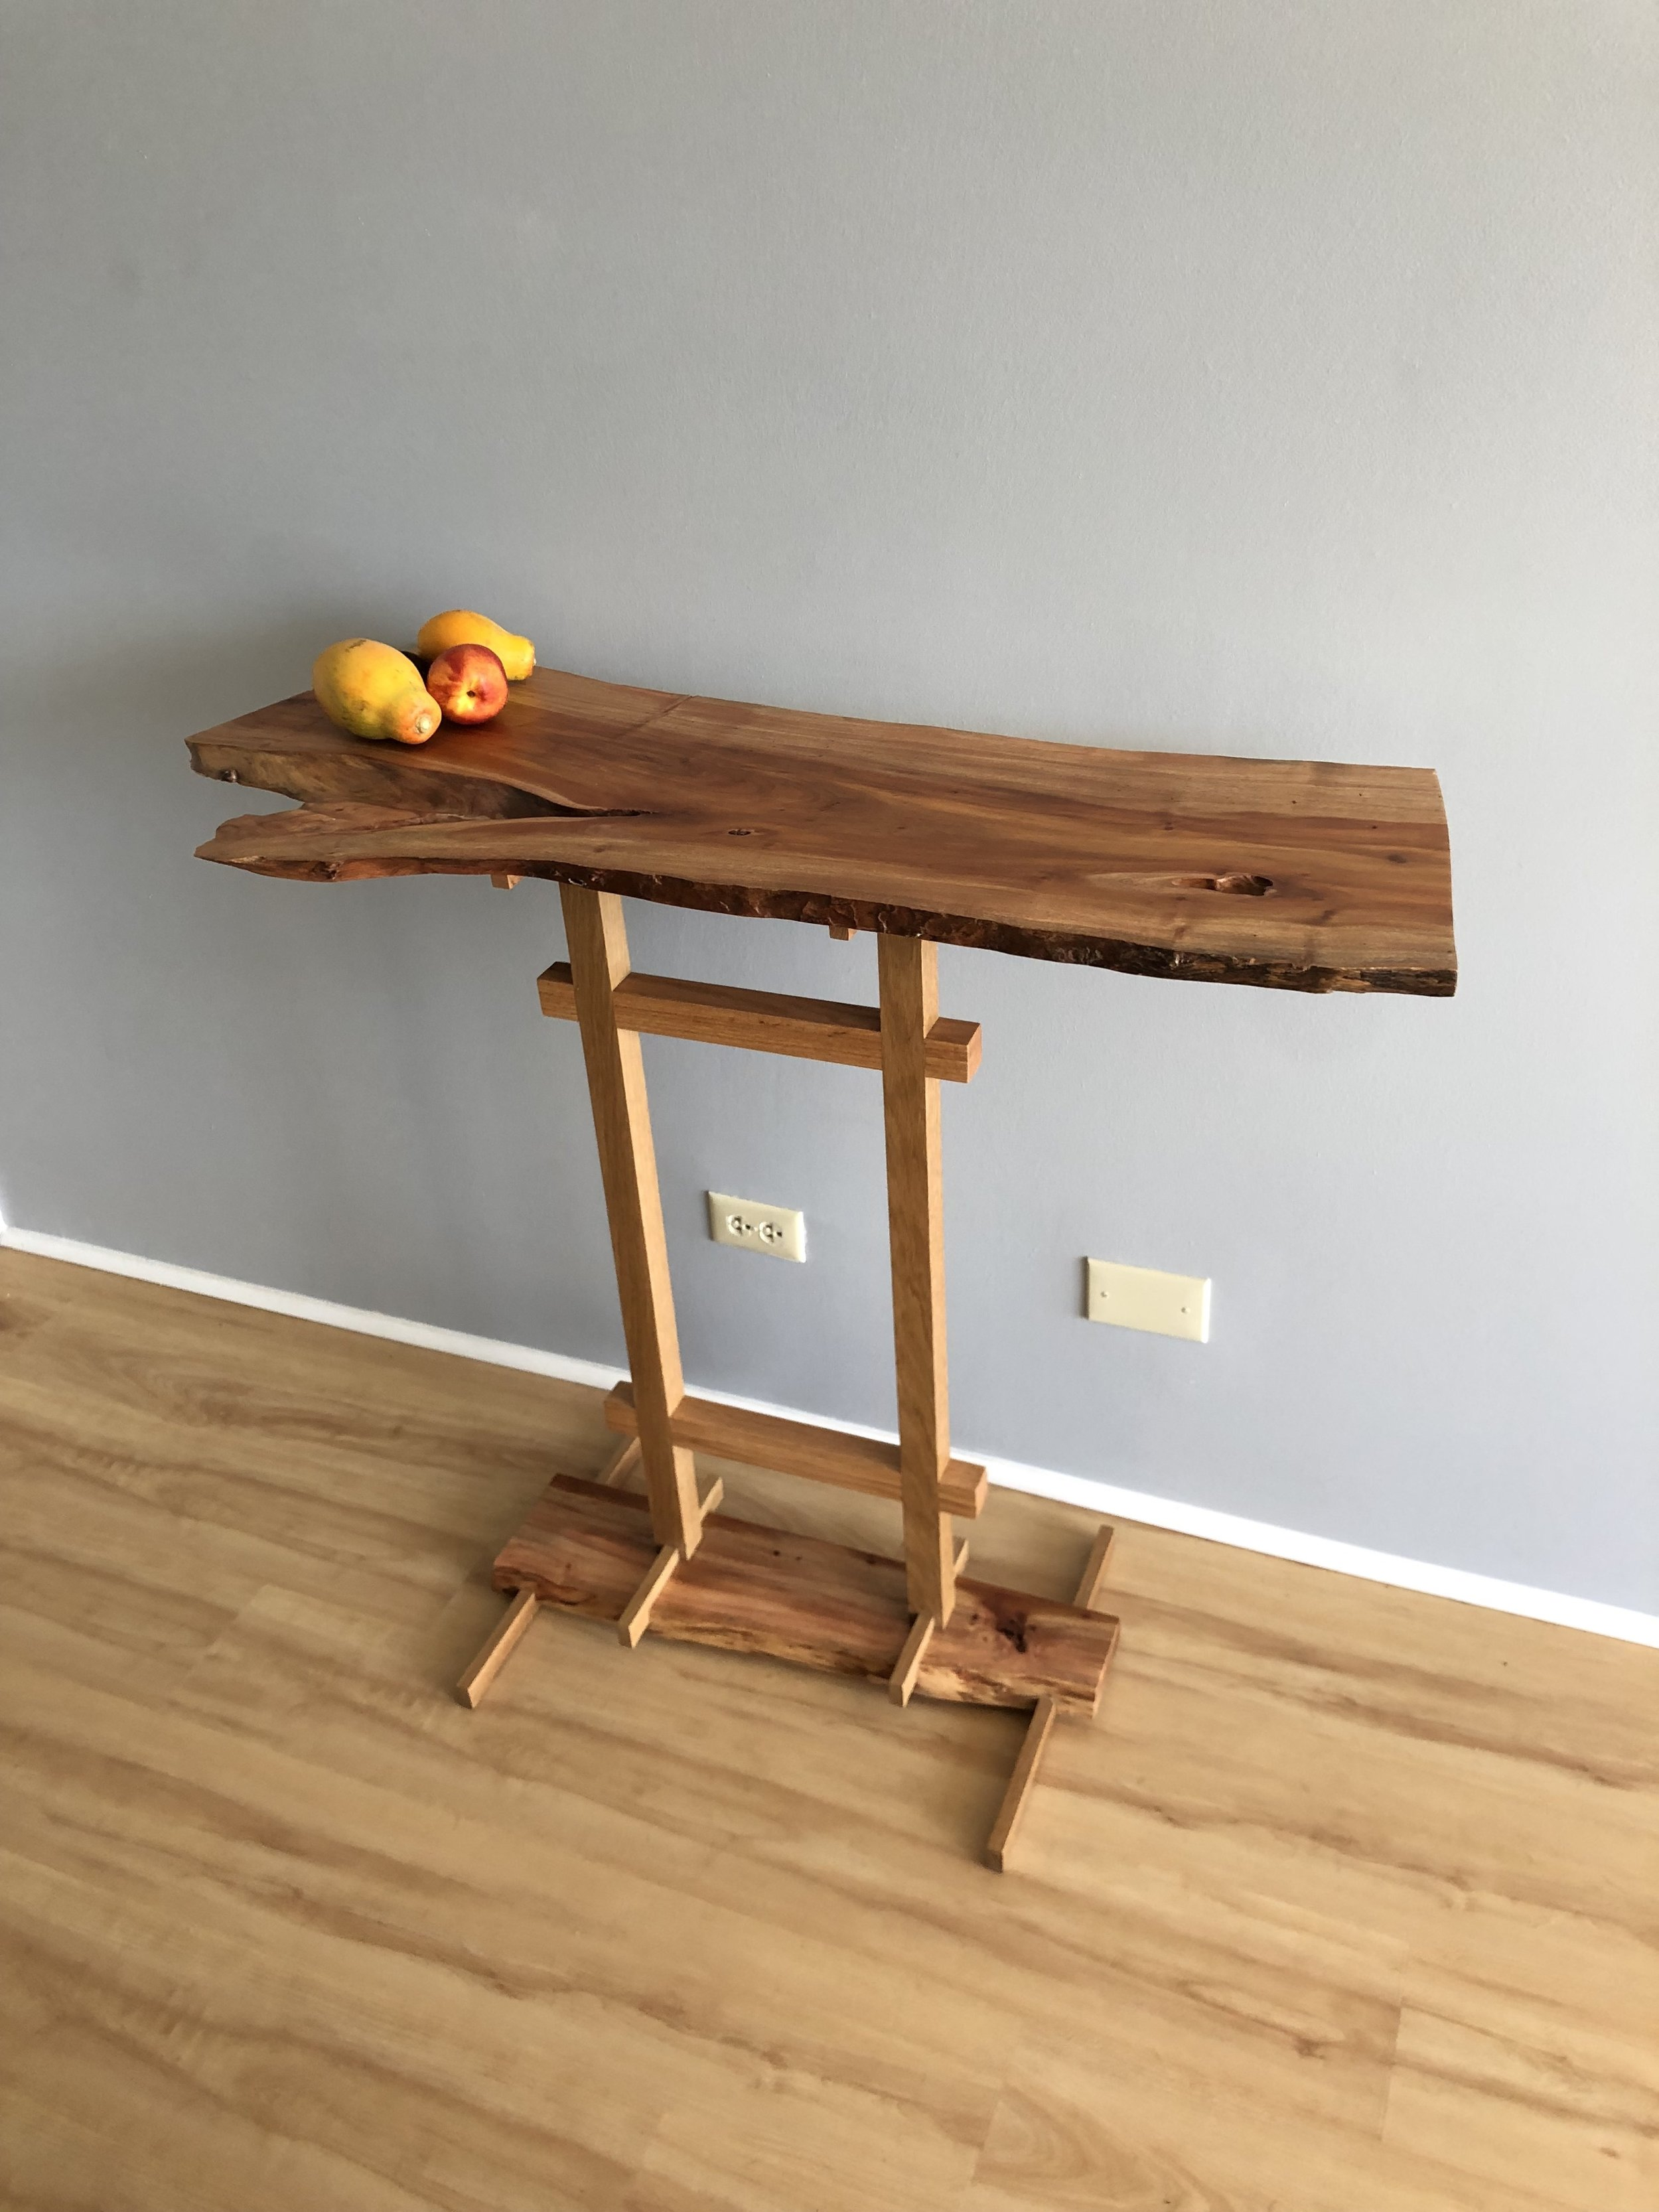 Opiuma mixed with red oak and traditional joinery